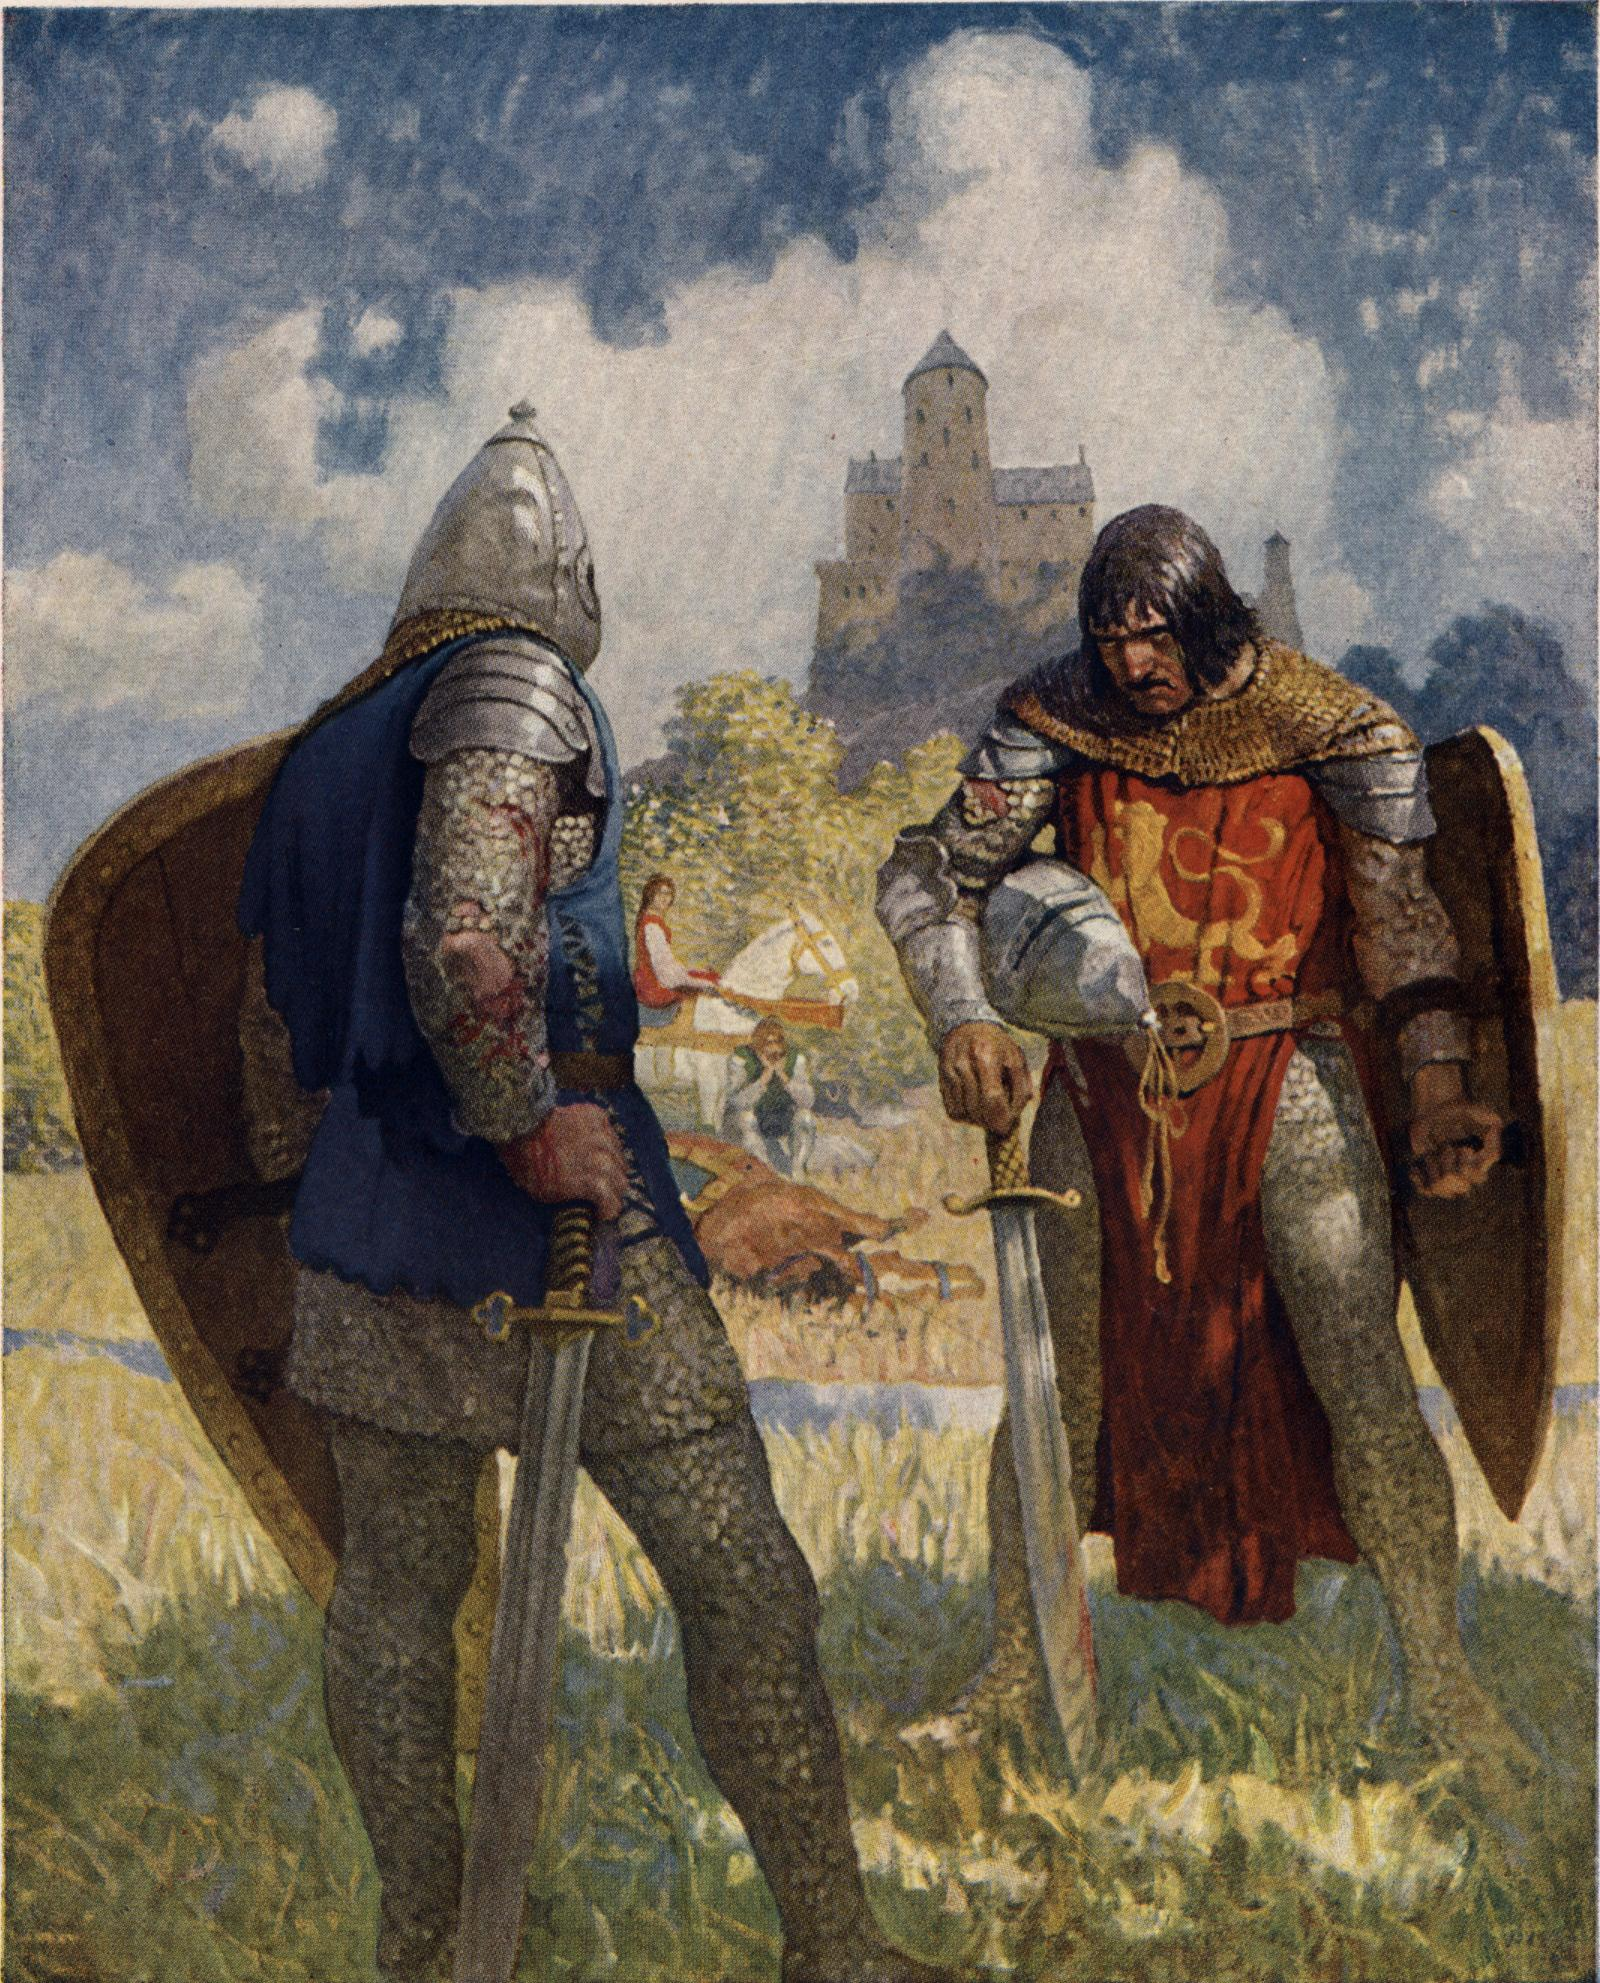 sir gawain and the green knight analysis essay